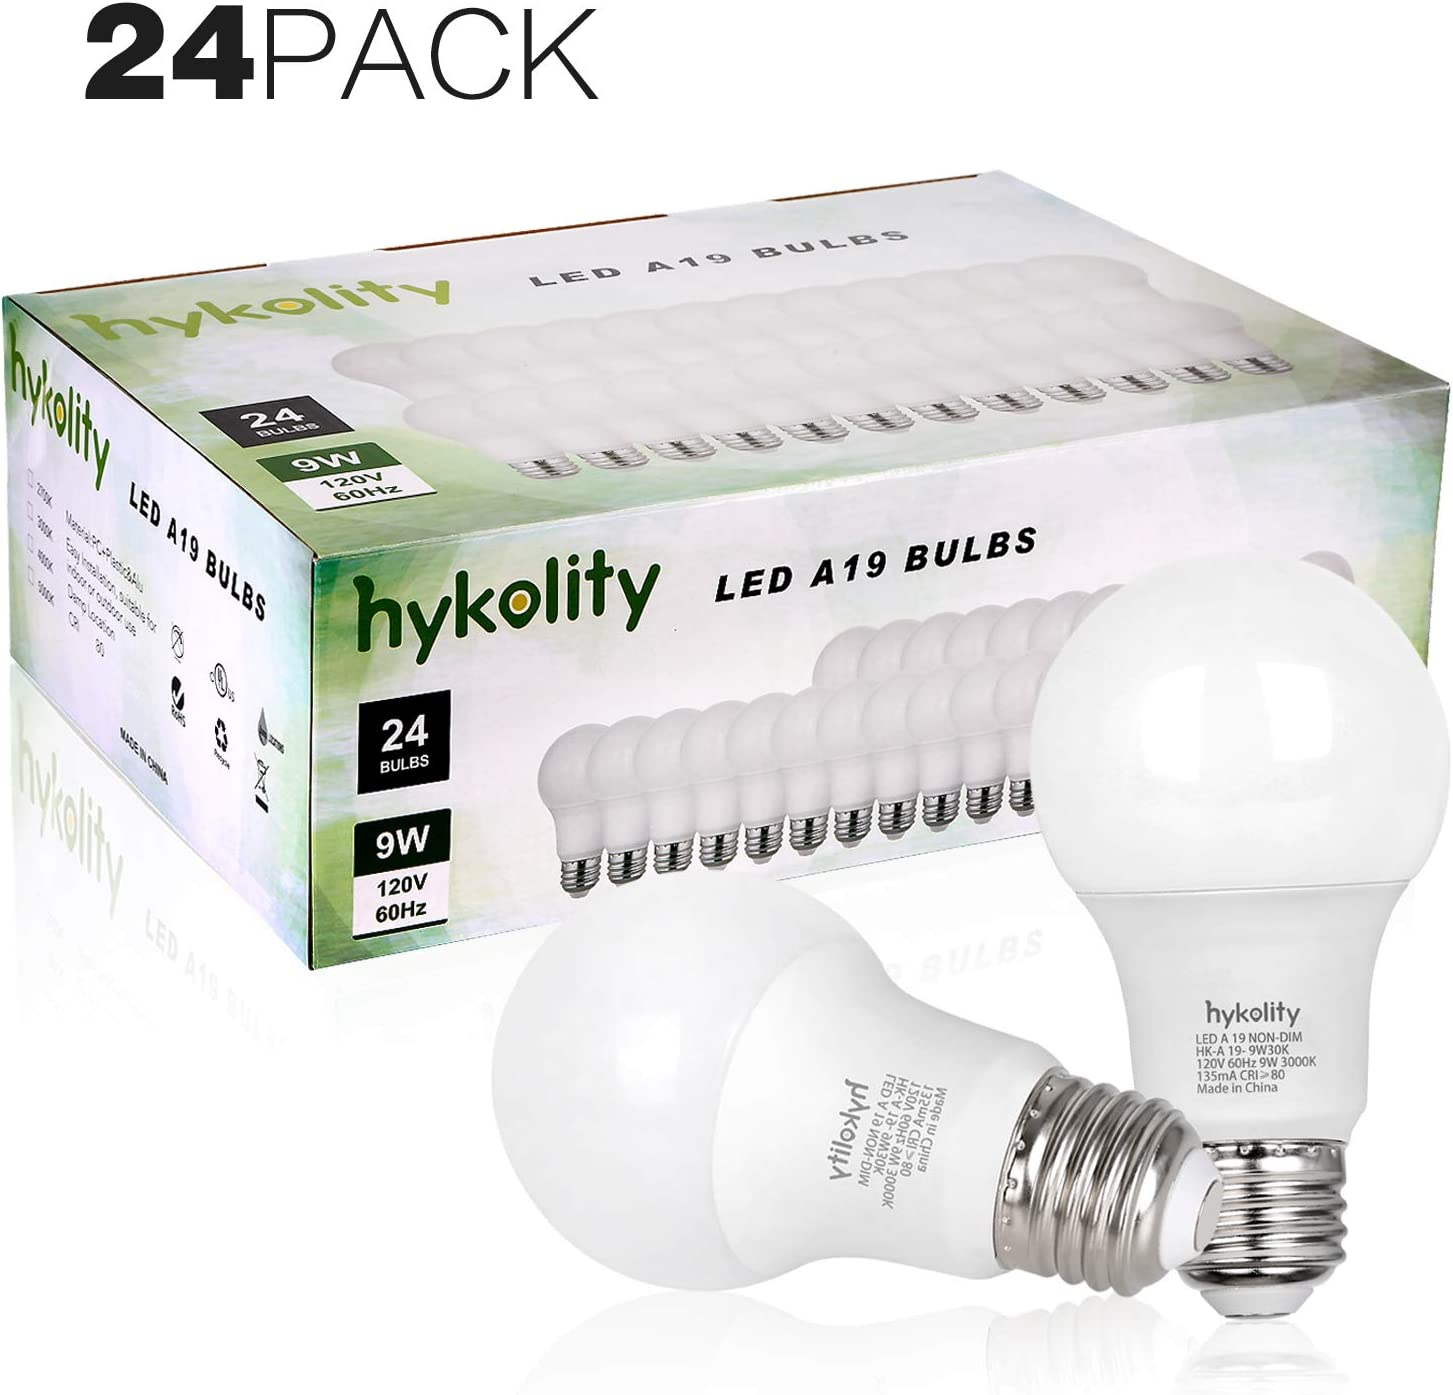 Hykolity 24 Pack 60W Equivalent A19 LED Light Bulb, 9W, 5000K Daylight, 800LM, E26 Medium Base, Non-Dimmable, UL Listed